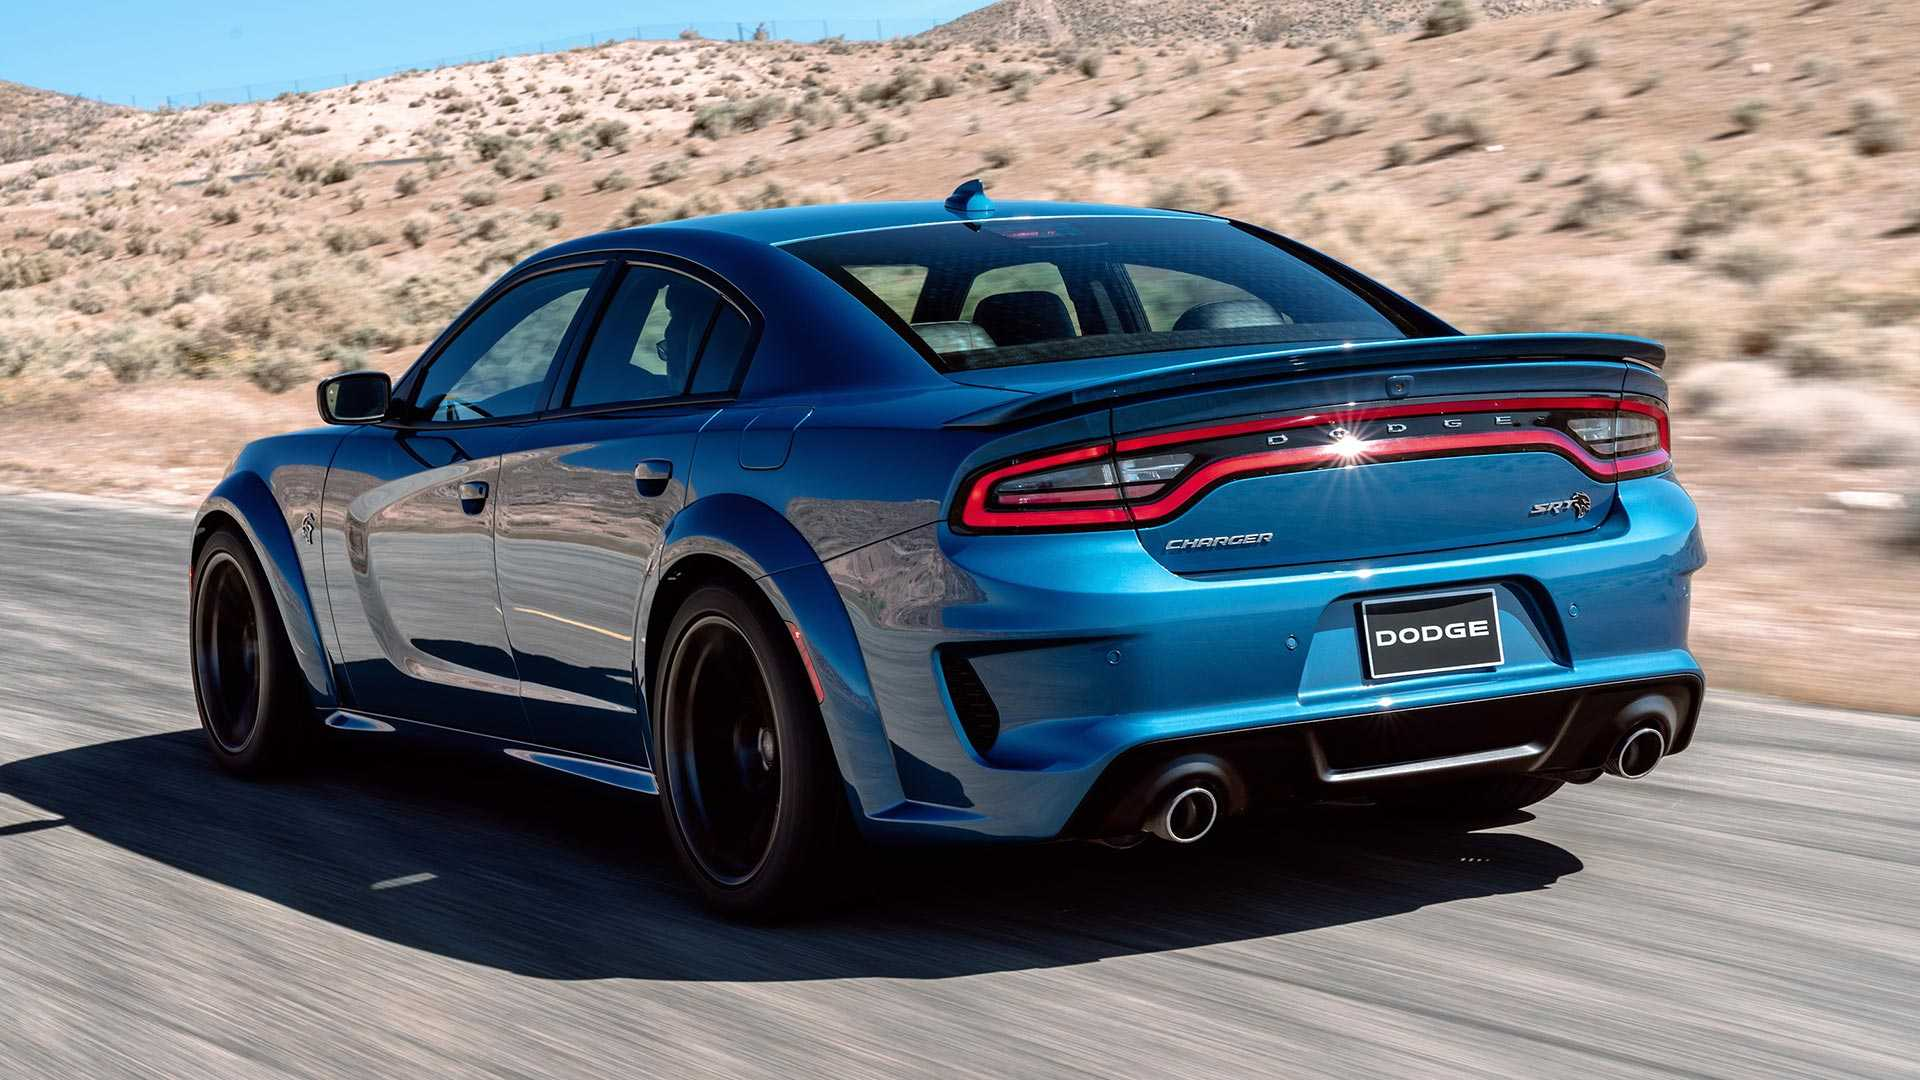 2020 Dodge Charger SRT Hellcat Widebody Rear Three-Quarter Wallpapers #111 of 183